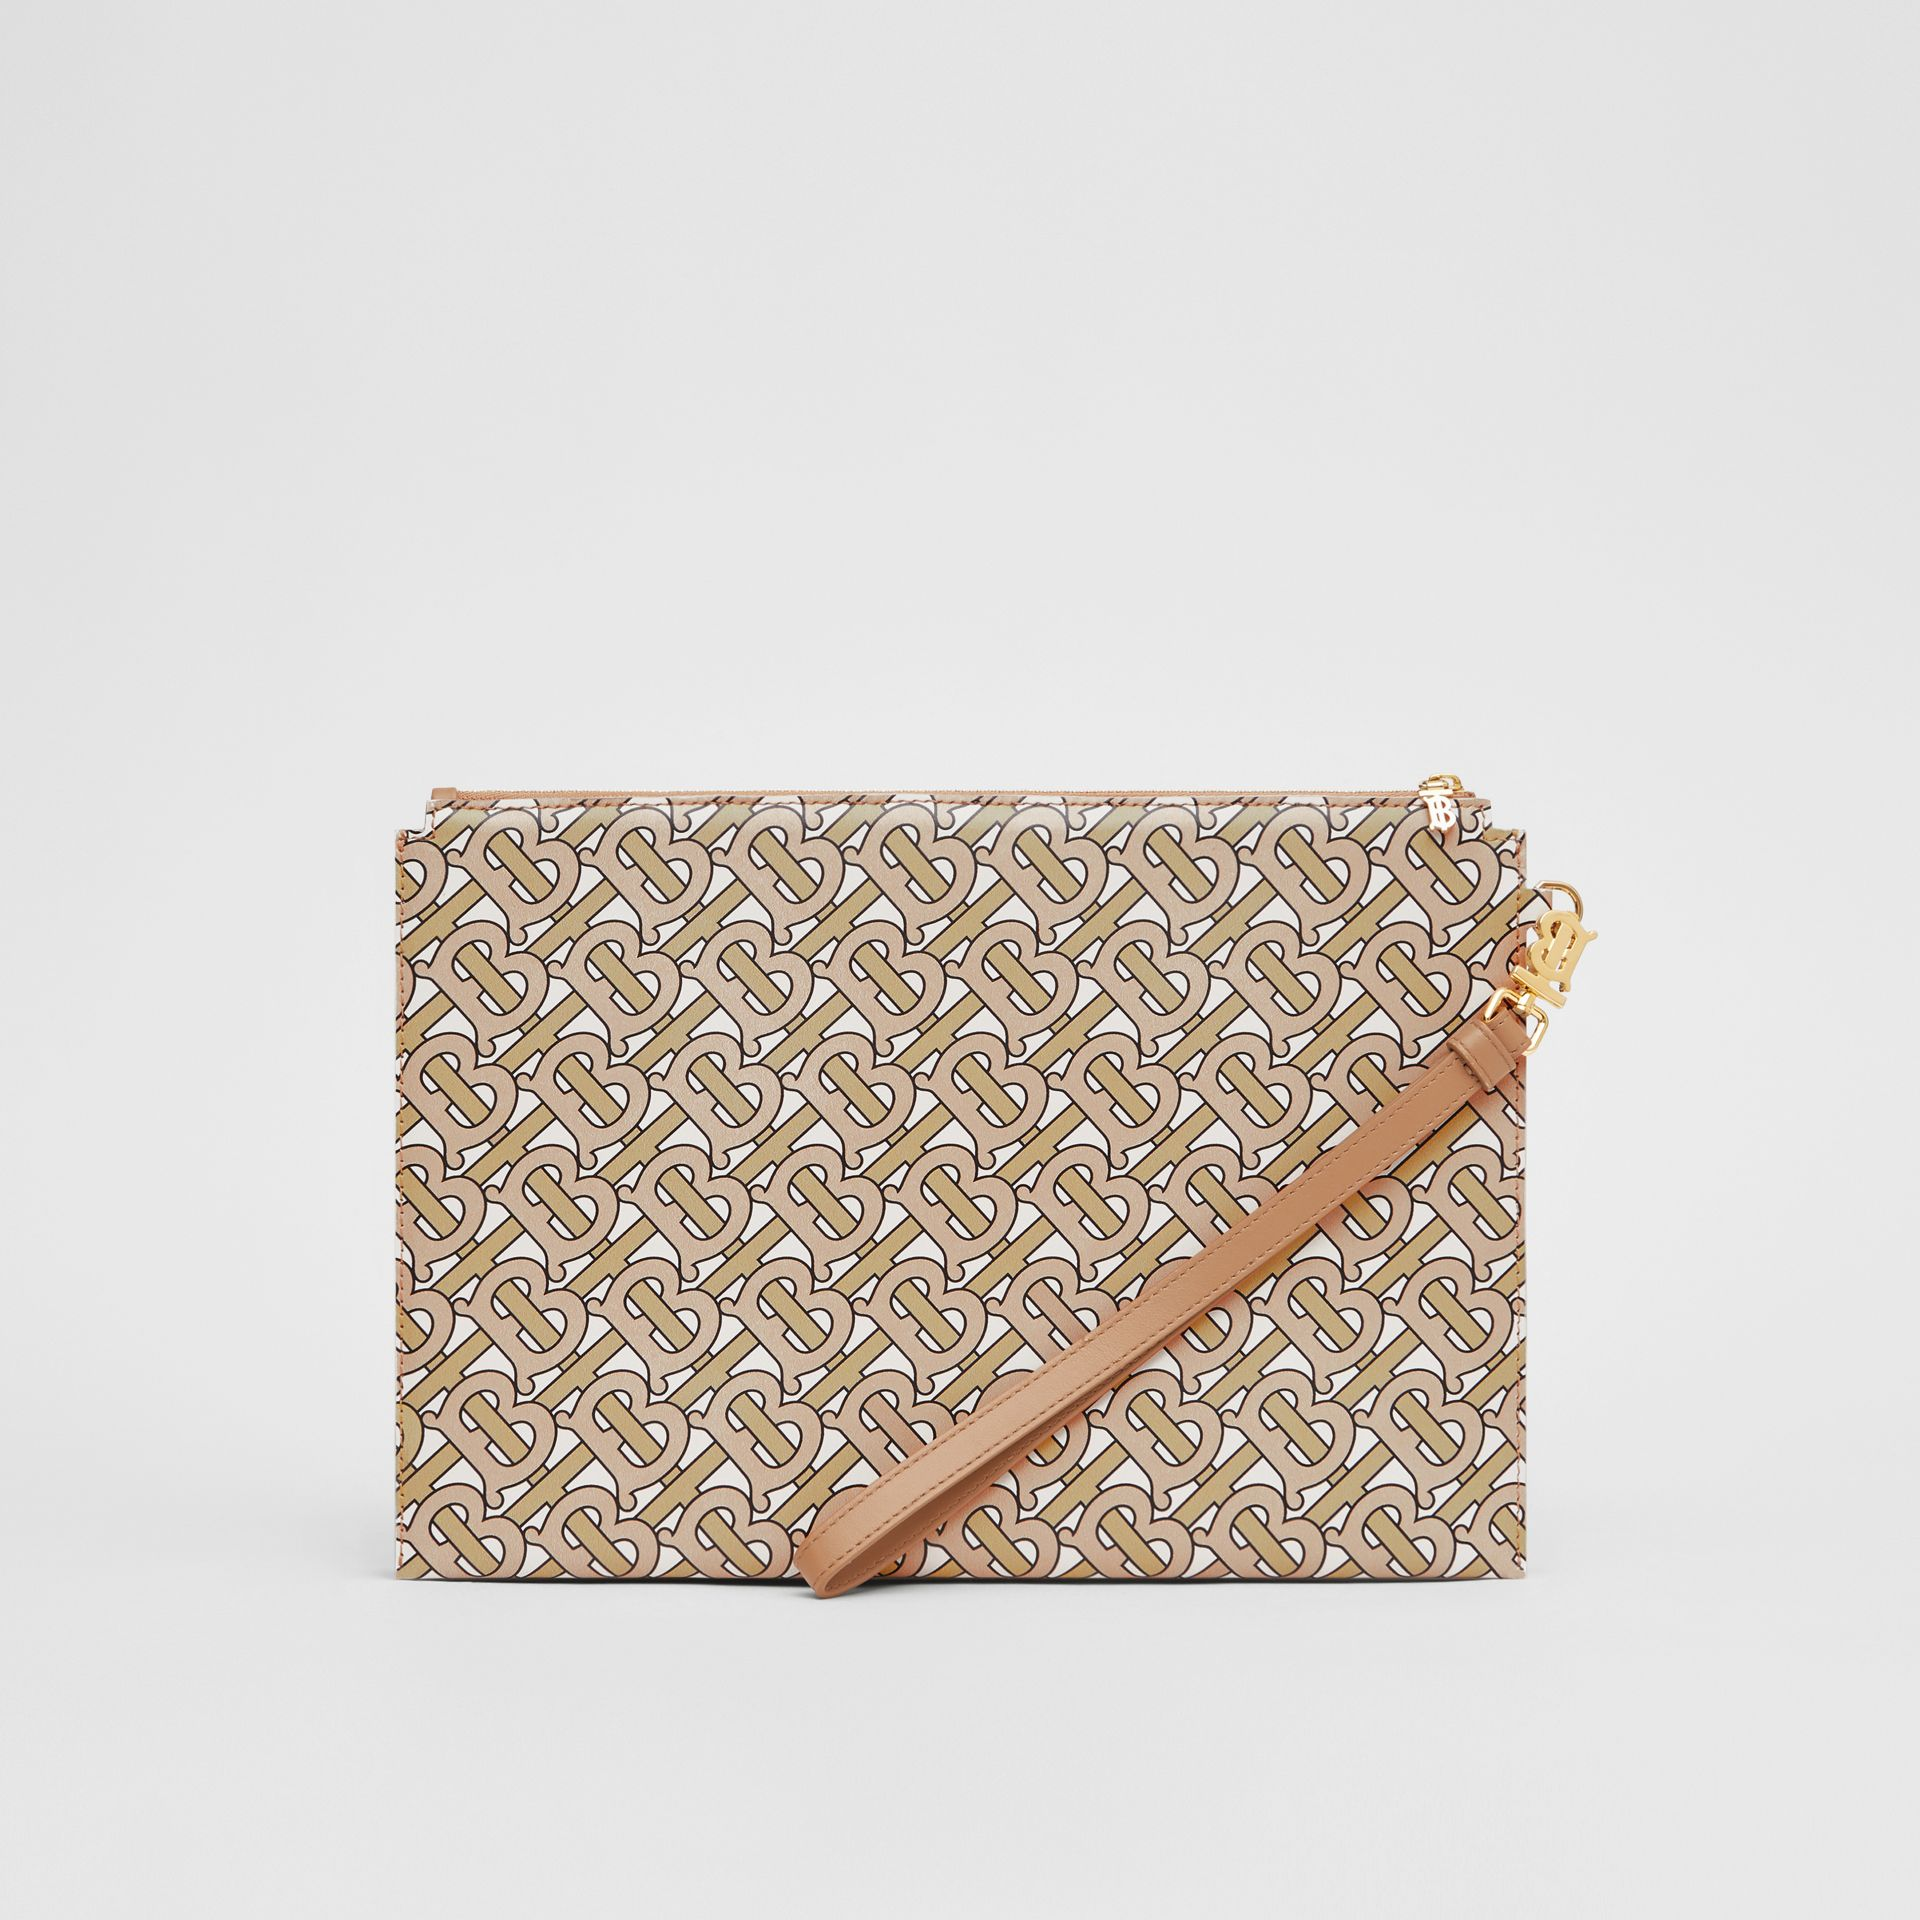 Monogram Print Leather Pouch in Beige - Women | Burberry Hong Kong S.A.R - gallery image 6